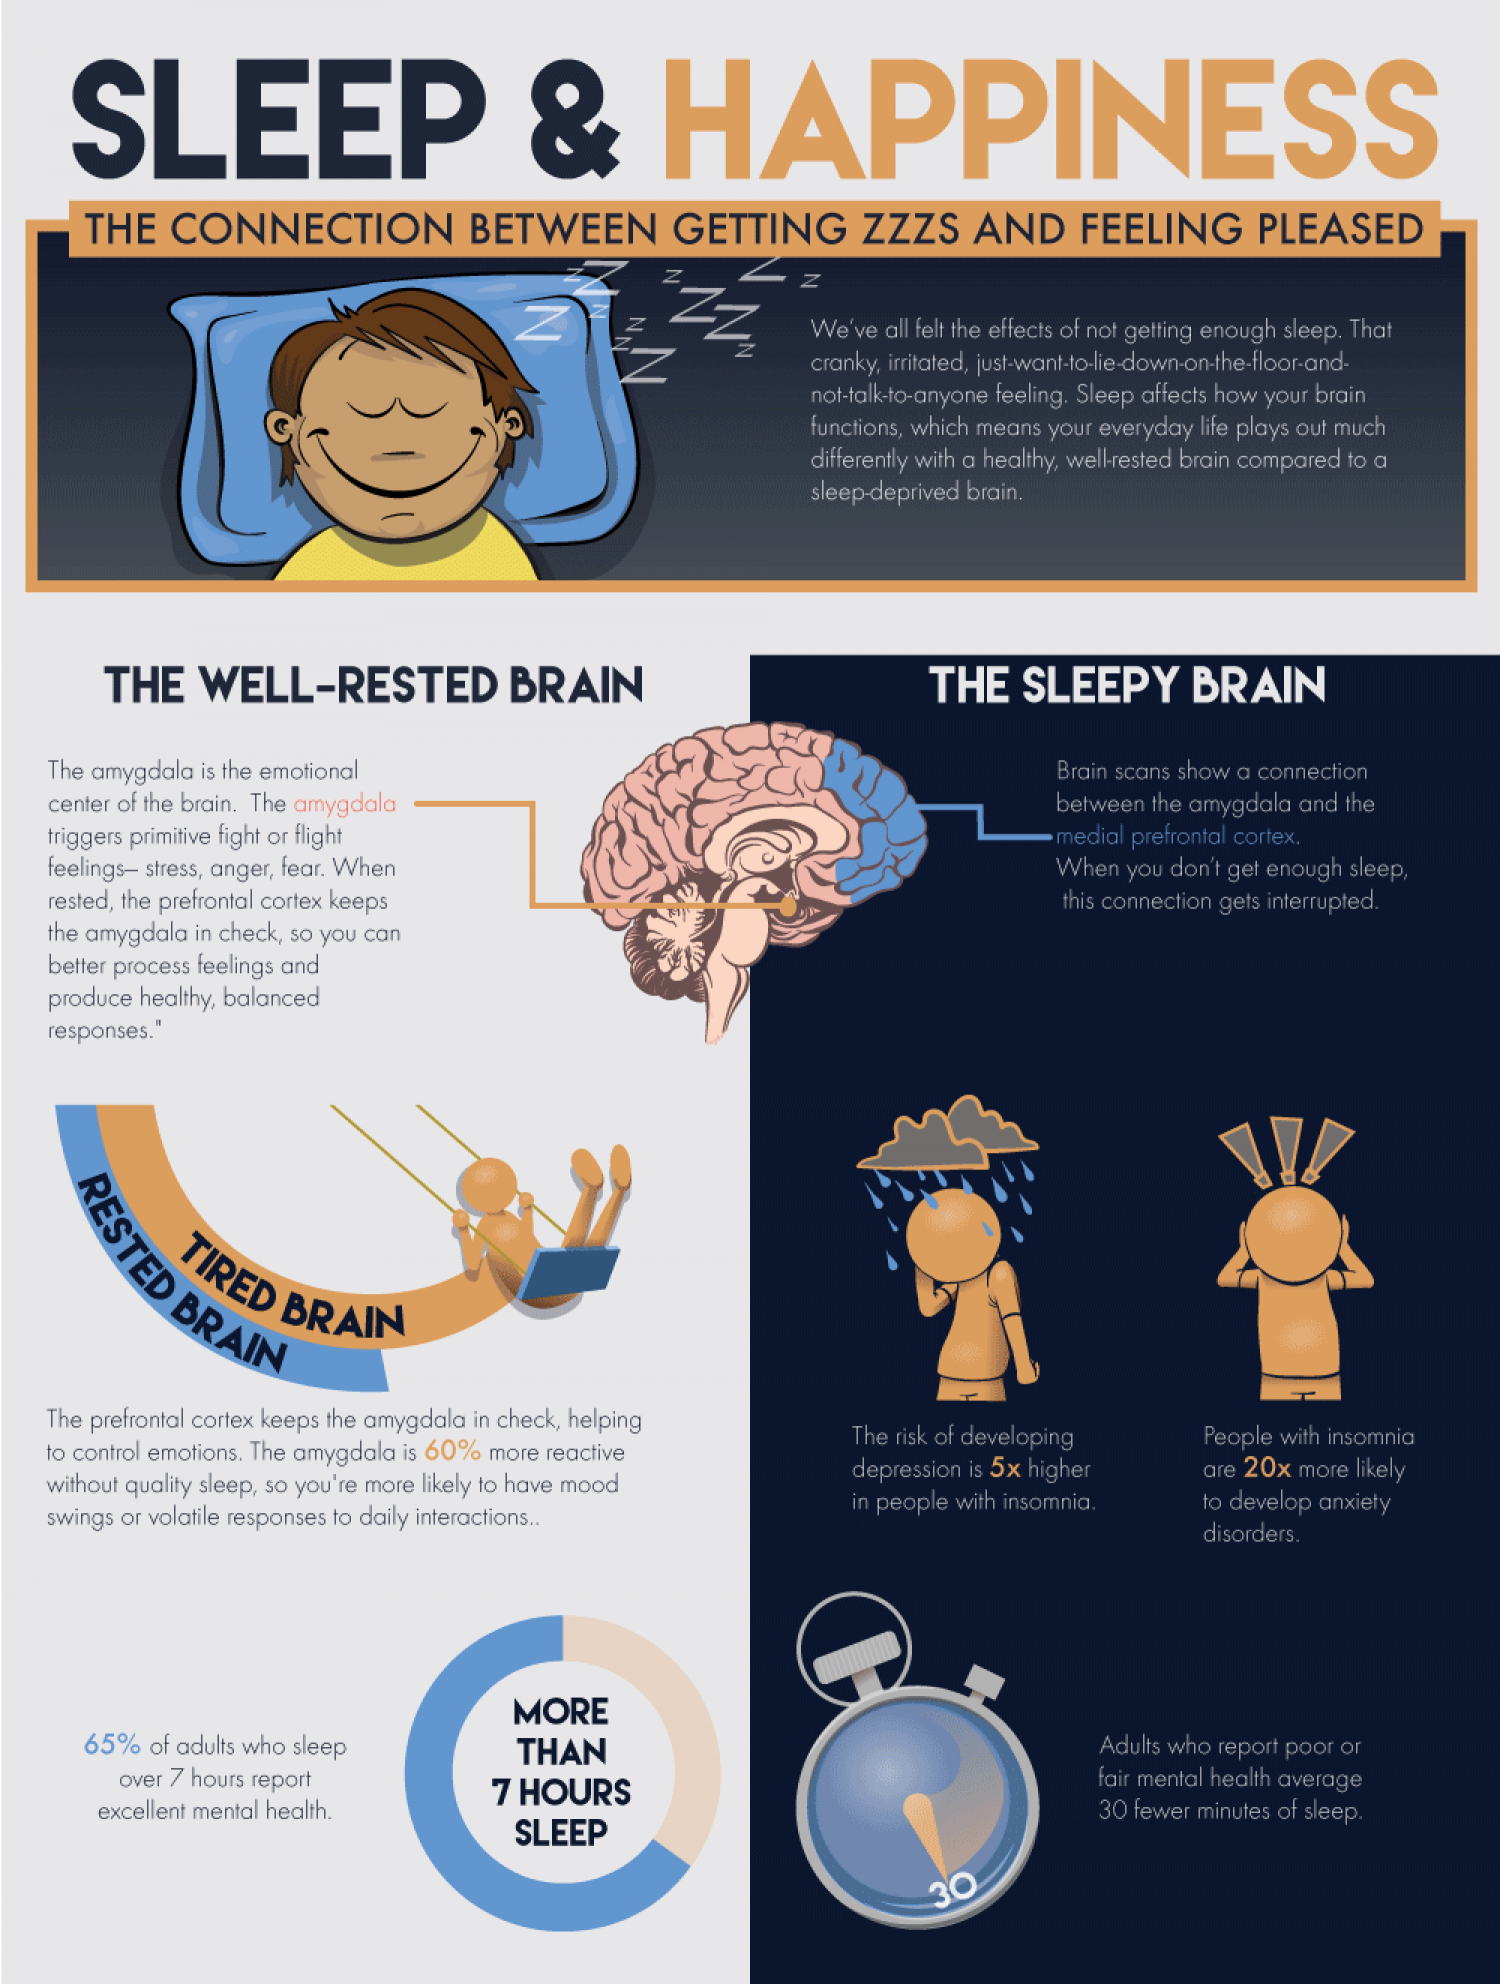 Sleep and Happiness: The Connection Between Getting ZZZs and Feeling Pleased Infographic